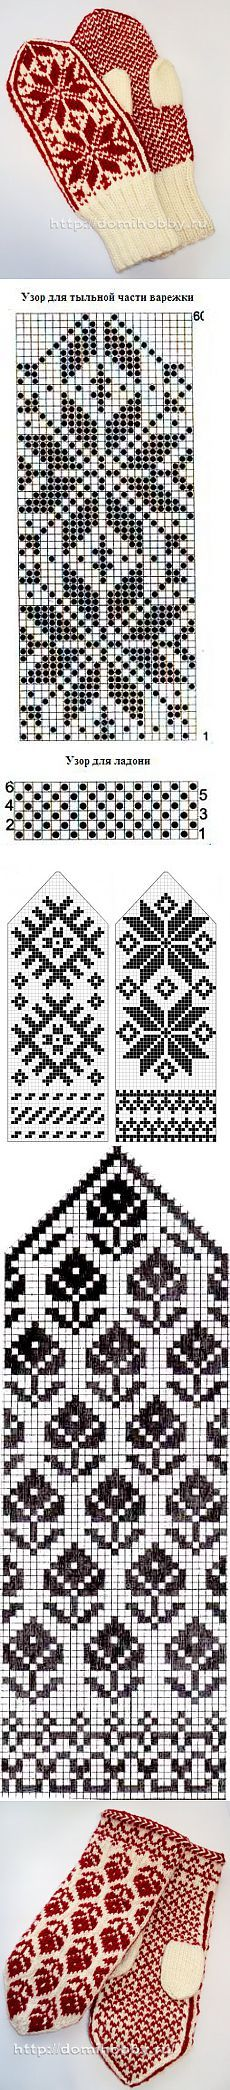 26 Ideas Crochet Gloves Chart Fair Isles For 2019 Knitted Mittens Pattern, Crochet Mittens, Crochet Gloves, The Mitten, Knitting Charts, Knitting Stitches, Crochet Mandala Pattern, Baby Afghan Crochet, Fair Isle Knitting